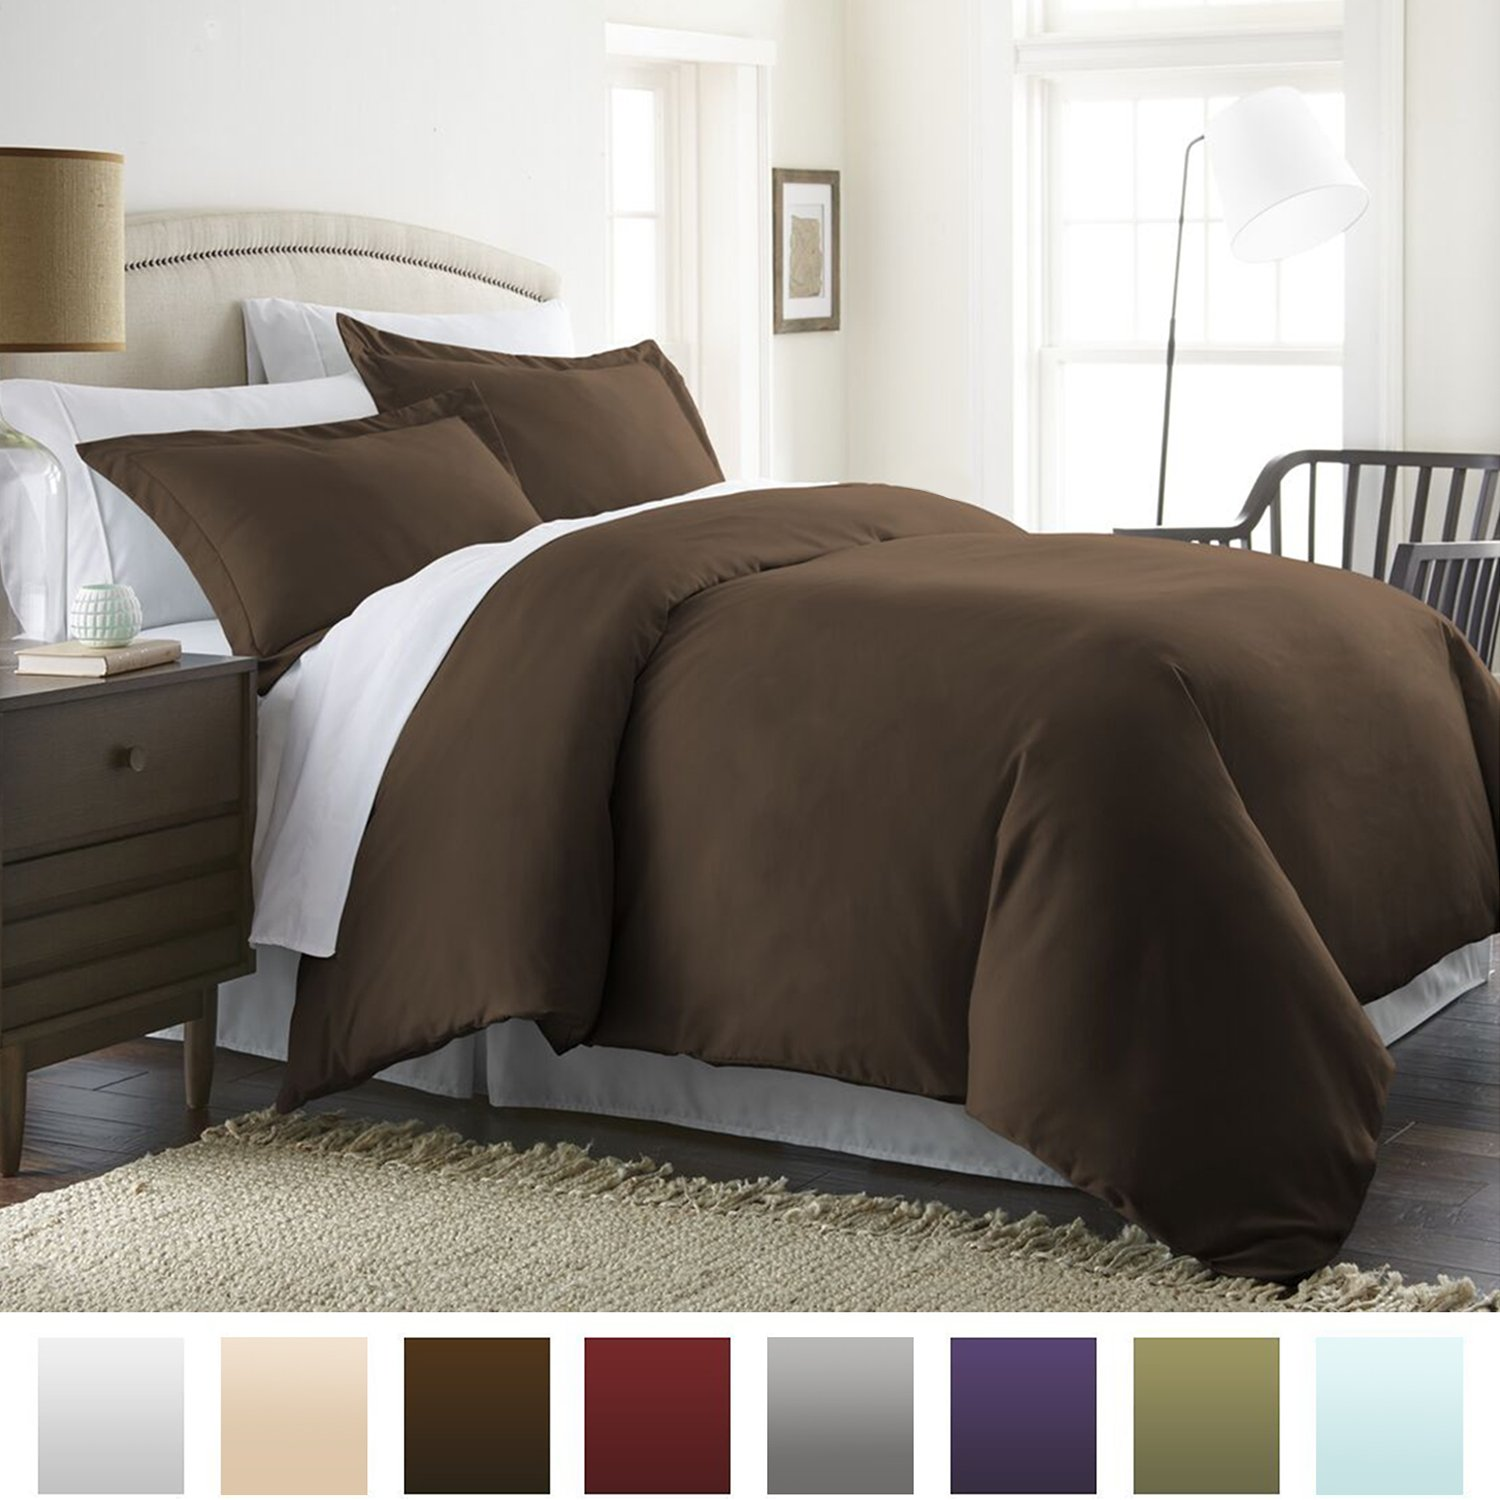 Beckham Hotel Collection Luxury Soft Brushed 1800 Series Microfiber Duvet Cover Set - Hypoallergenic - Twin/Twin XL, Brown